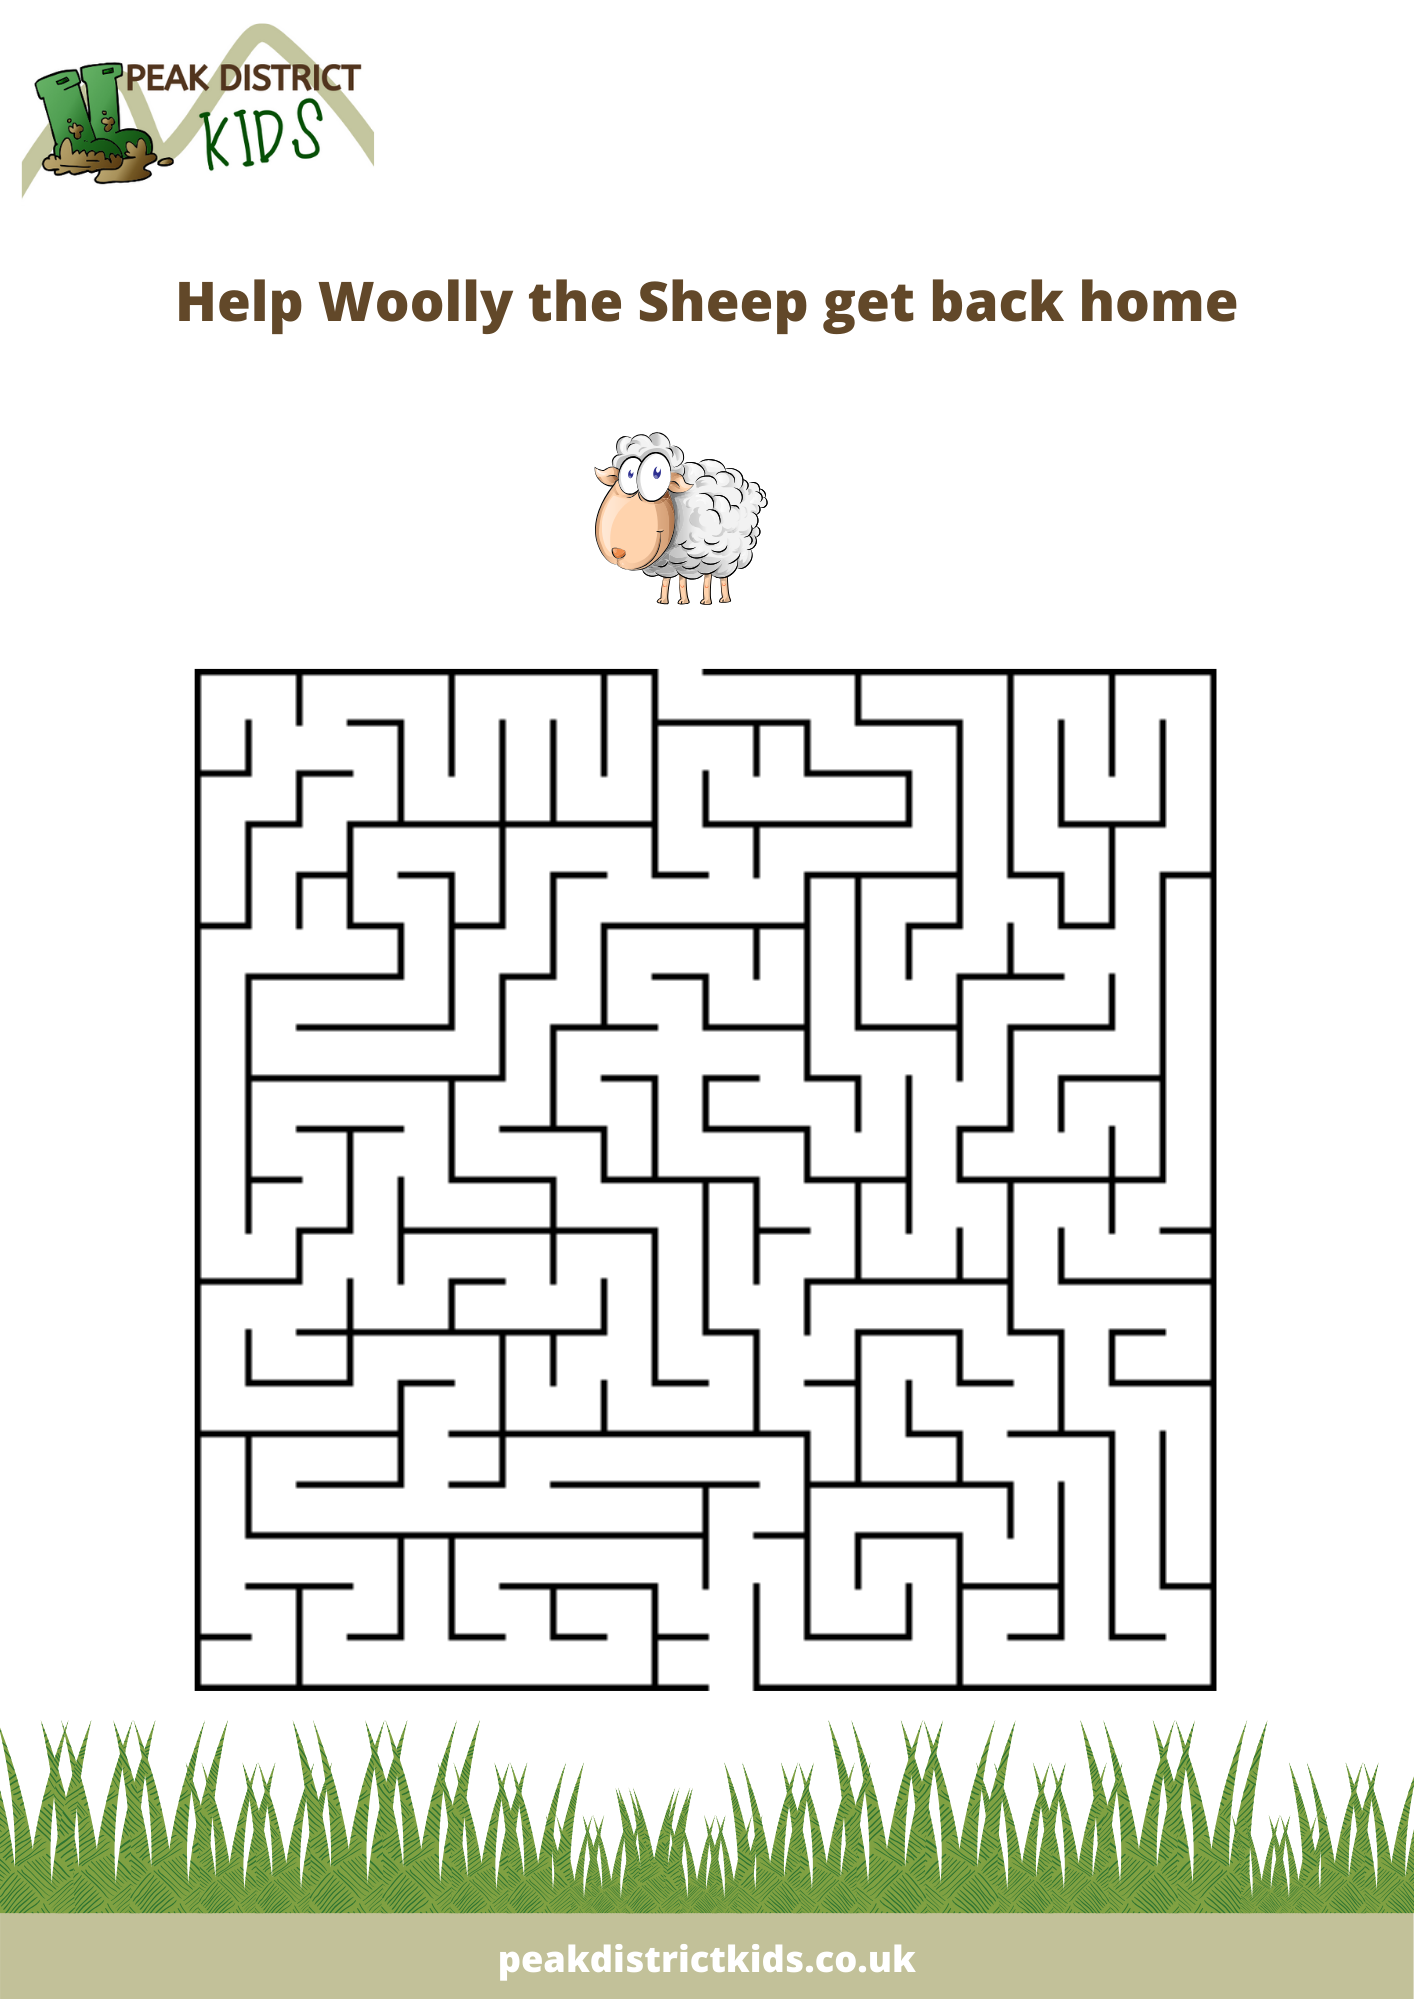 Woolly the Sheep kids puzzle maze